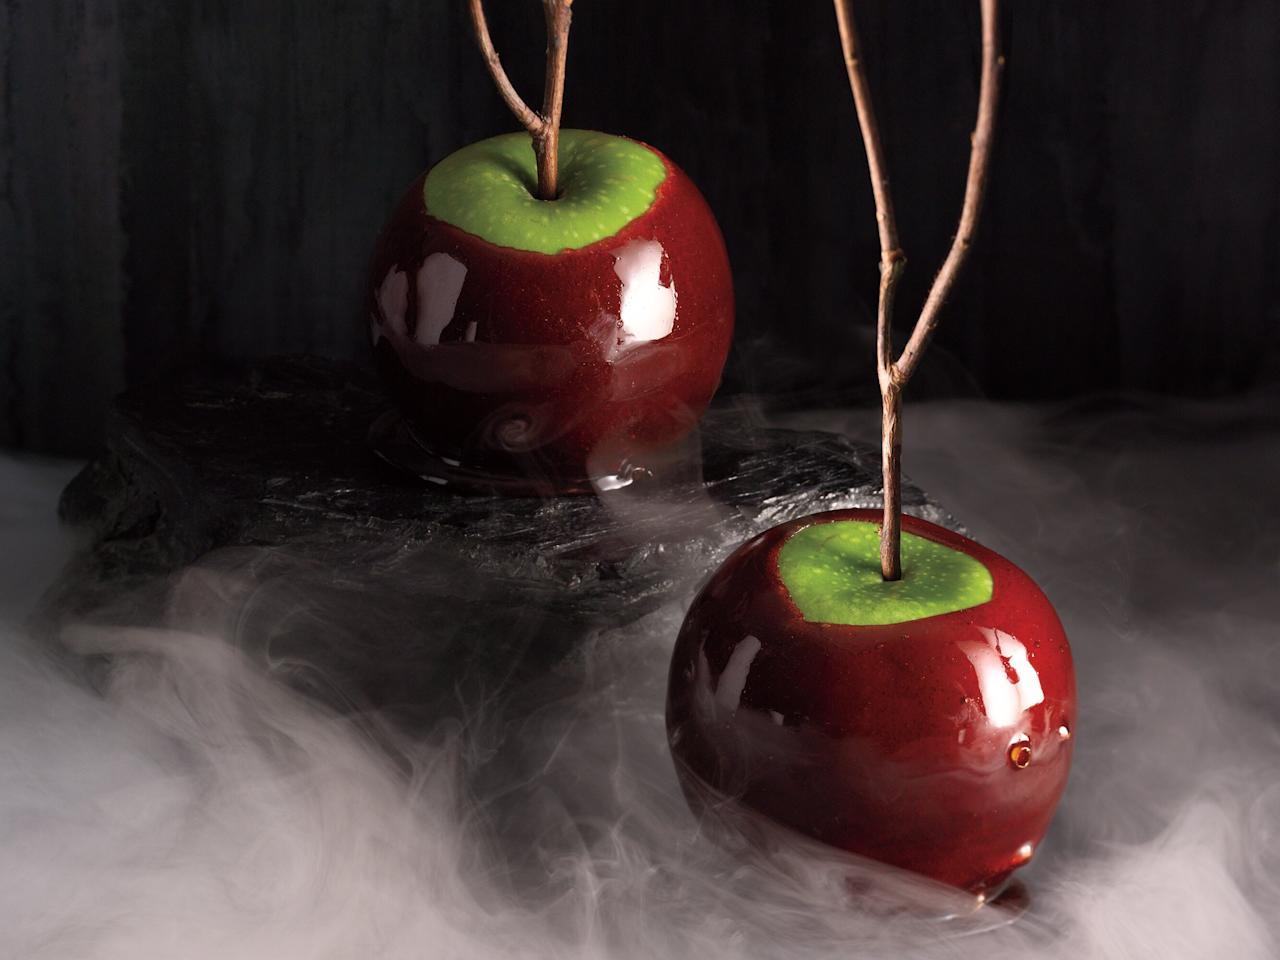 "<p>Wash apples well to remove any waxy coating, and dry thoroughly before dipping them. Work quickly, but if the syrup begins to set, you can reheat it over low heat to liquefy.</p> <p><a href=""https://www.myrecipes.com/recipe/cinnamon-cider-candied-apples"">Cinnamon-Cider Candied Apples Recipe</a></p>"